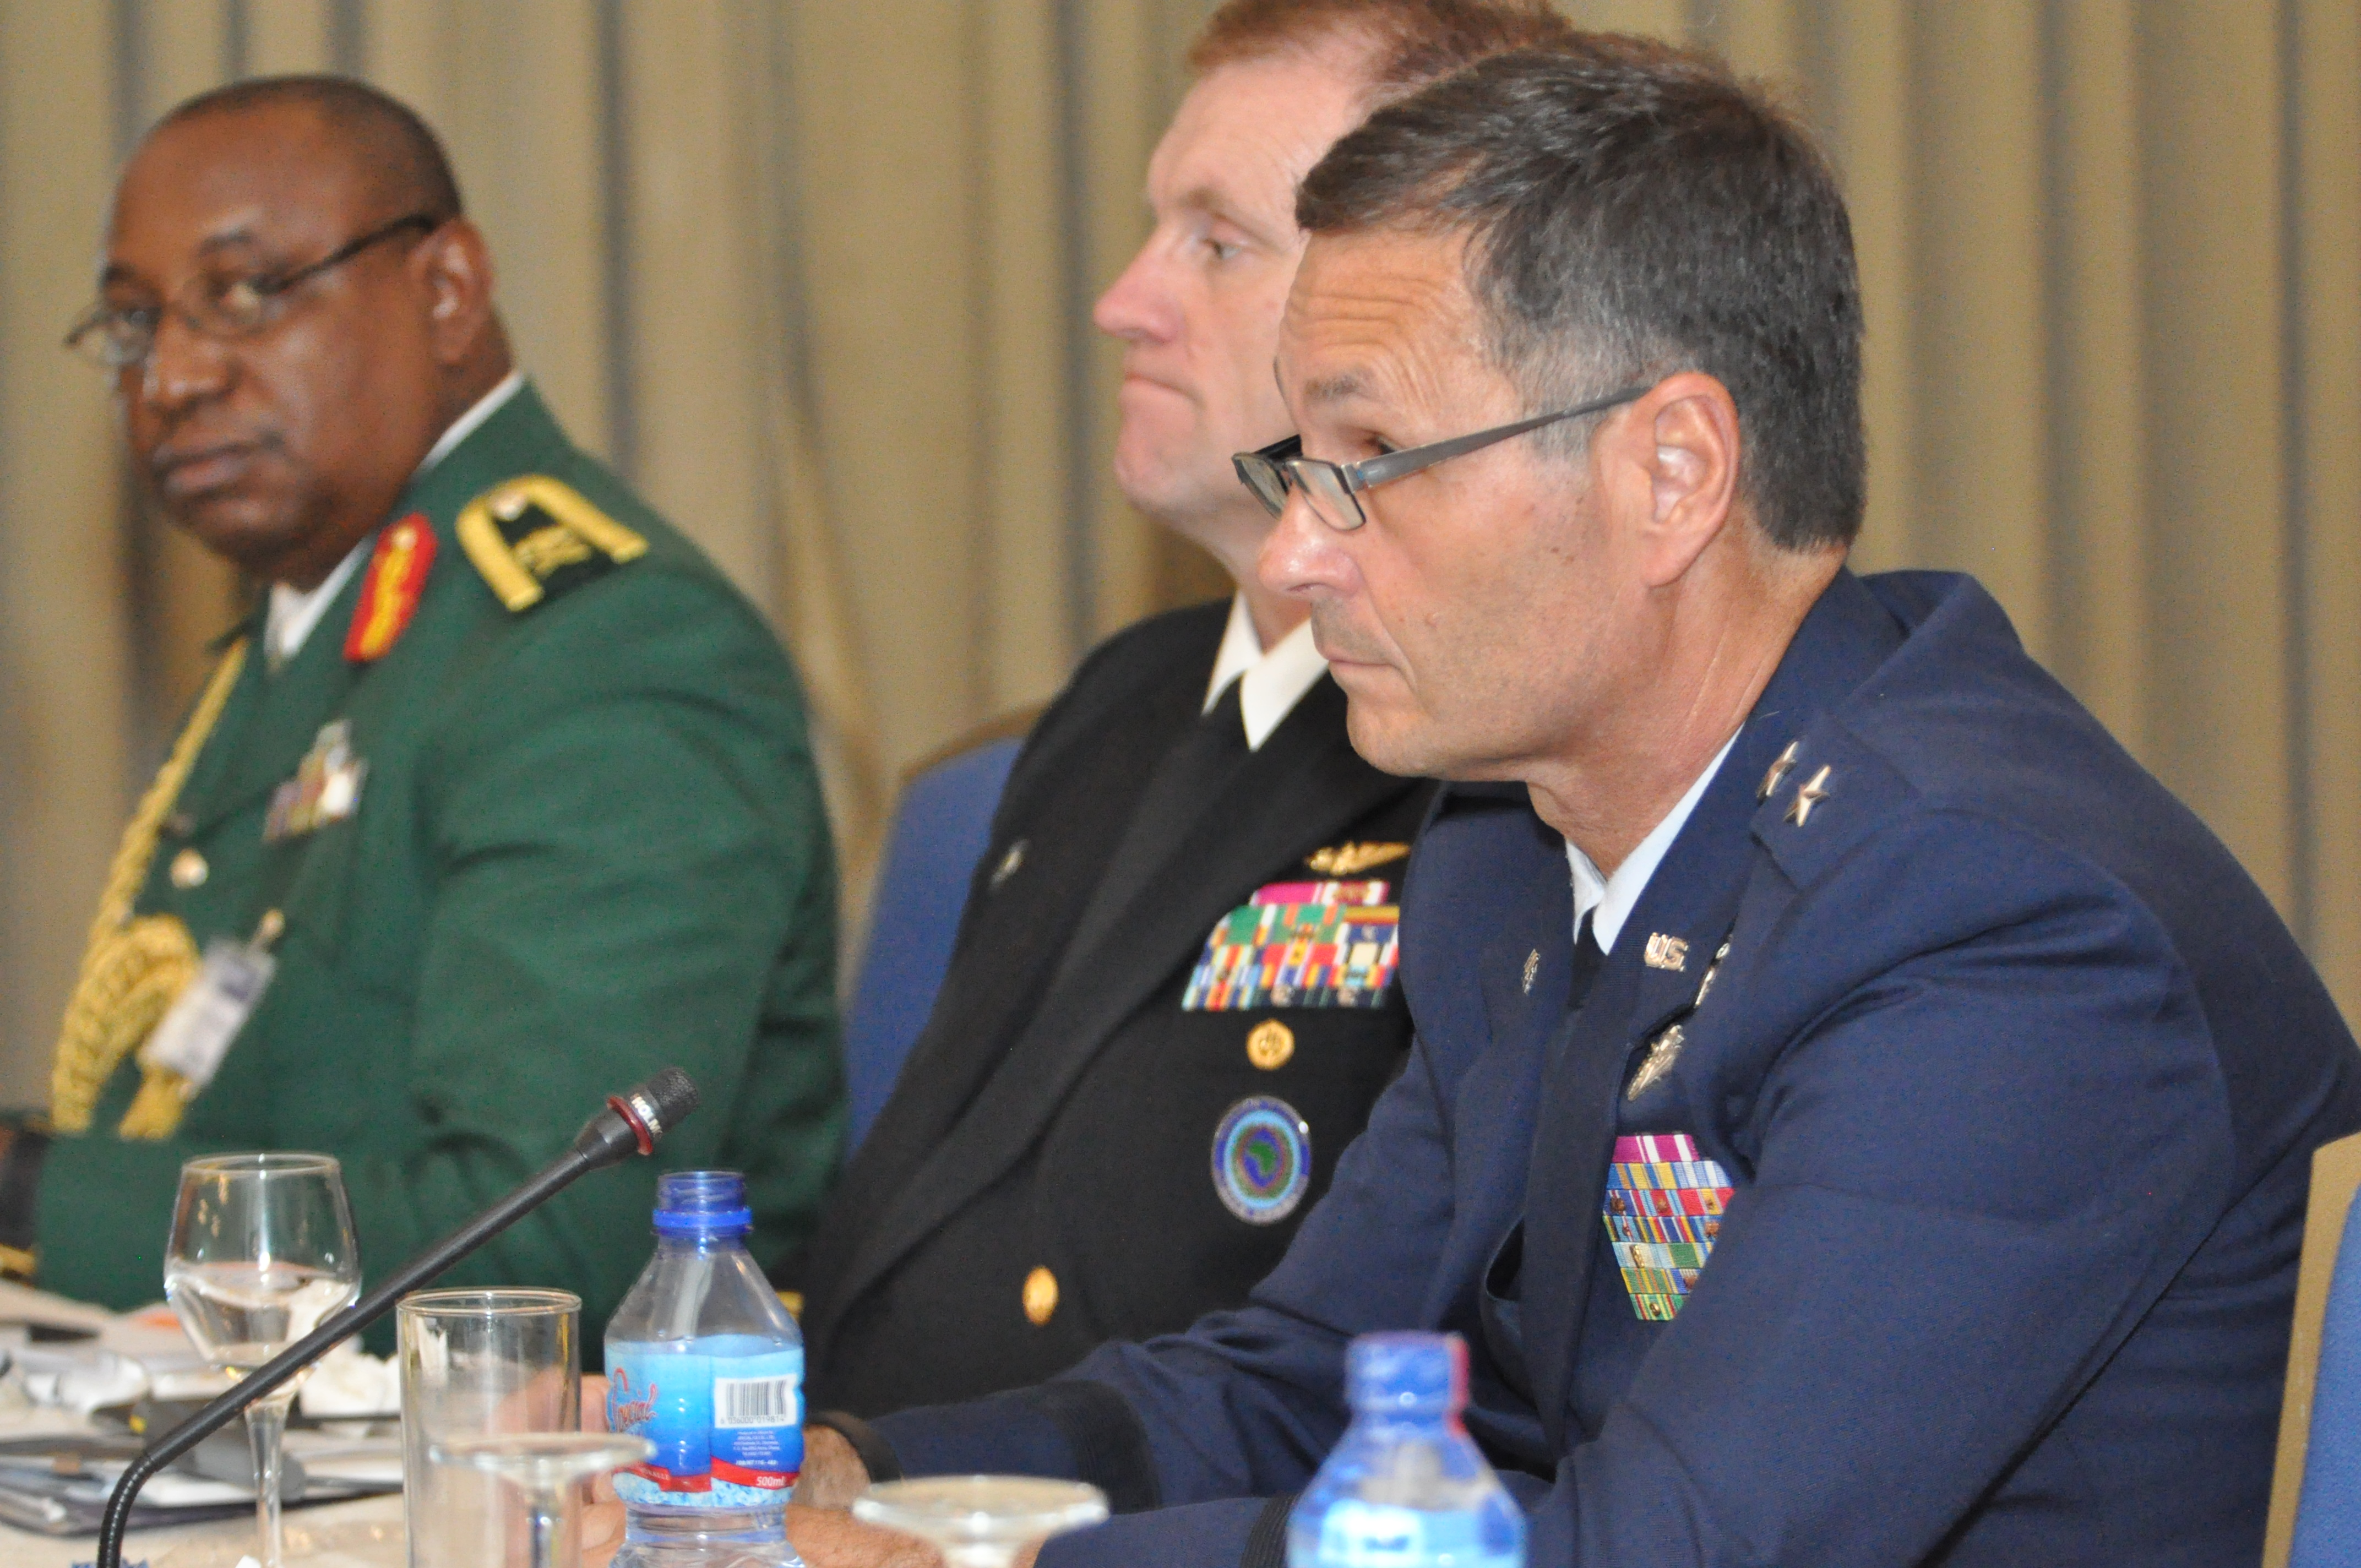 Maj. Gen. Worthe Holt, special advisor to the commander, U.S. Africa Command, delivers opening remarks during the first African Partner Outbreak Response Alliance meeting in Accra, Ghana, April 20, 2015.  Military and civilian doctors and medical practitioners from 12 African nations attended the three-day meeting. (U.S. AFRICOM photo by Tech. Sgt. Olufemi A Owolabi)